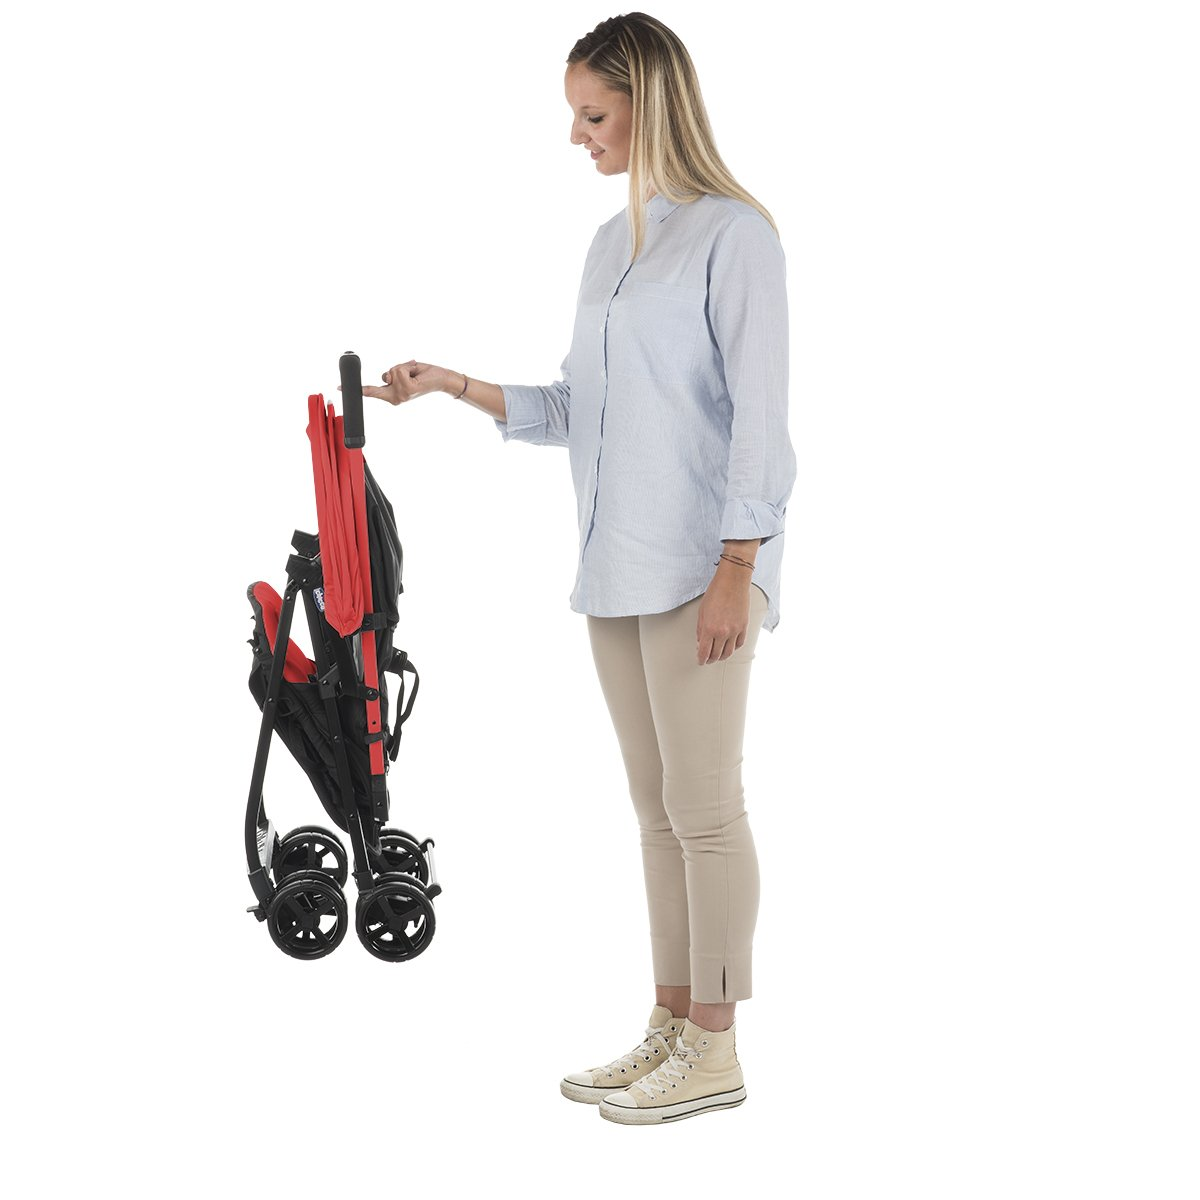 Amazon.com : Chicco Stroller ohlala Color Paprika : Baby